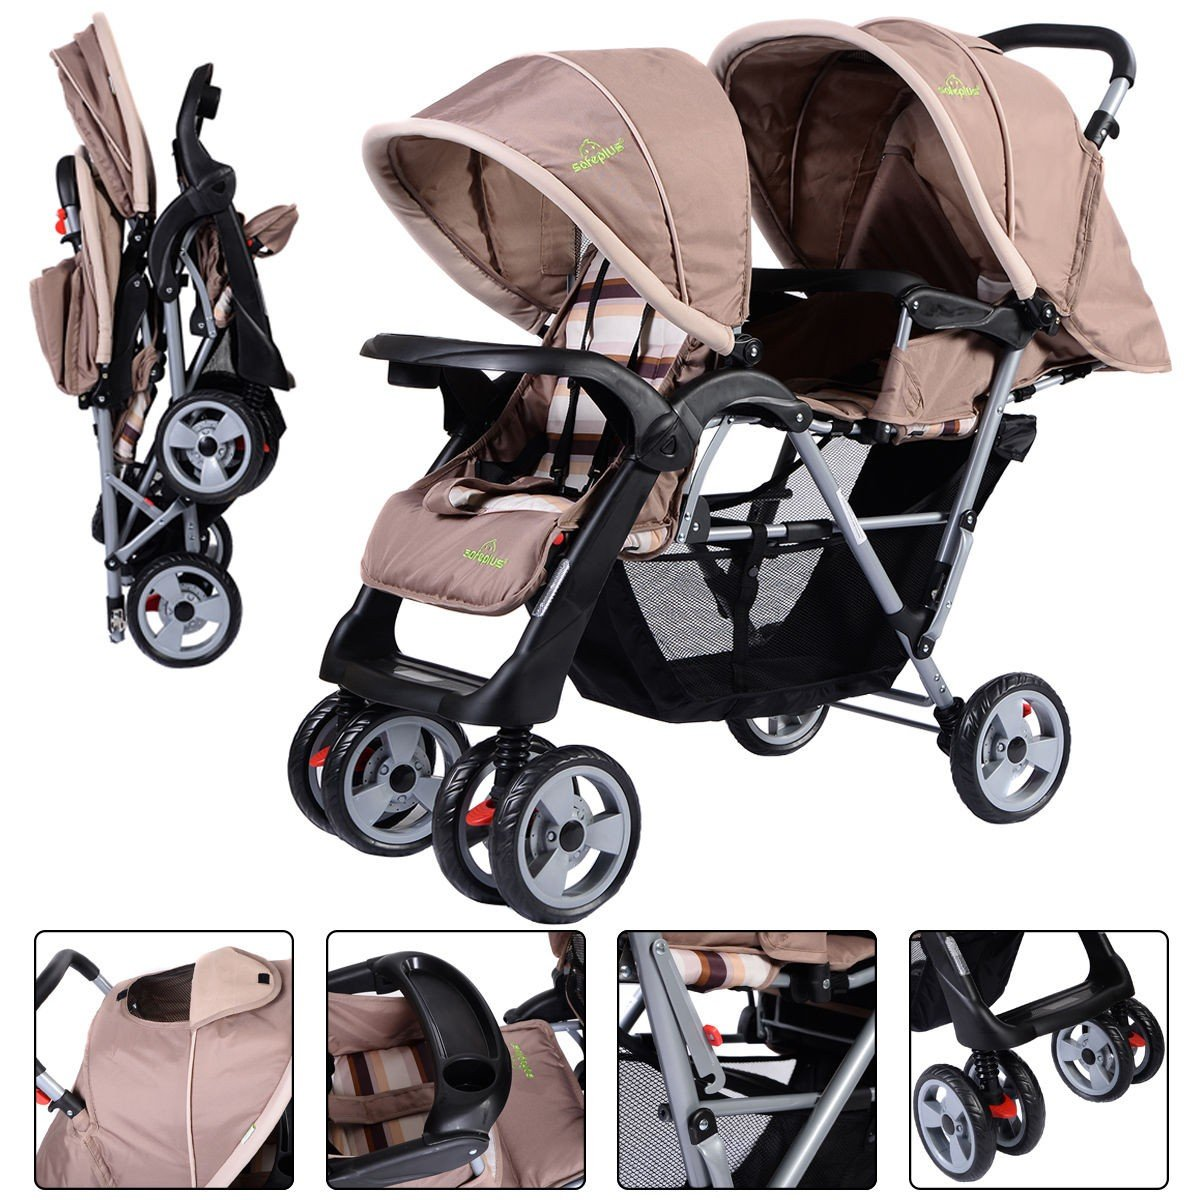 Foldable Twin Baby Double Stroller Kids Jogger Travel Infant Pushchair Gray Apontus